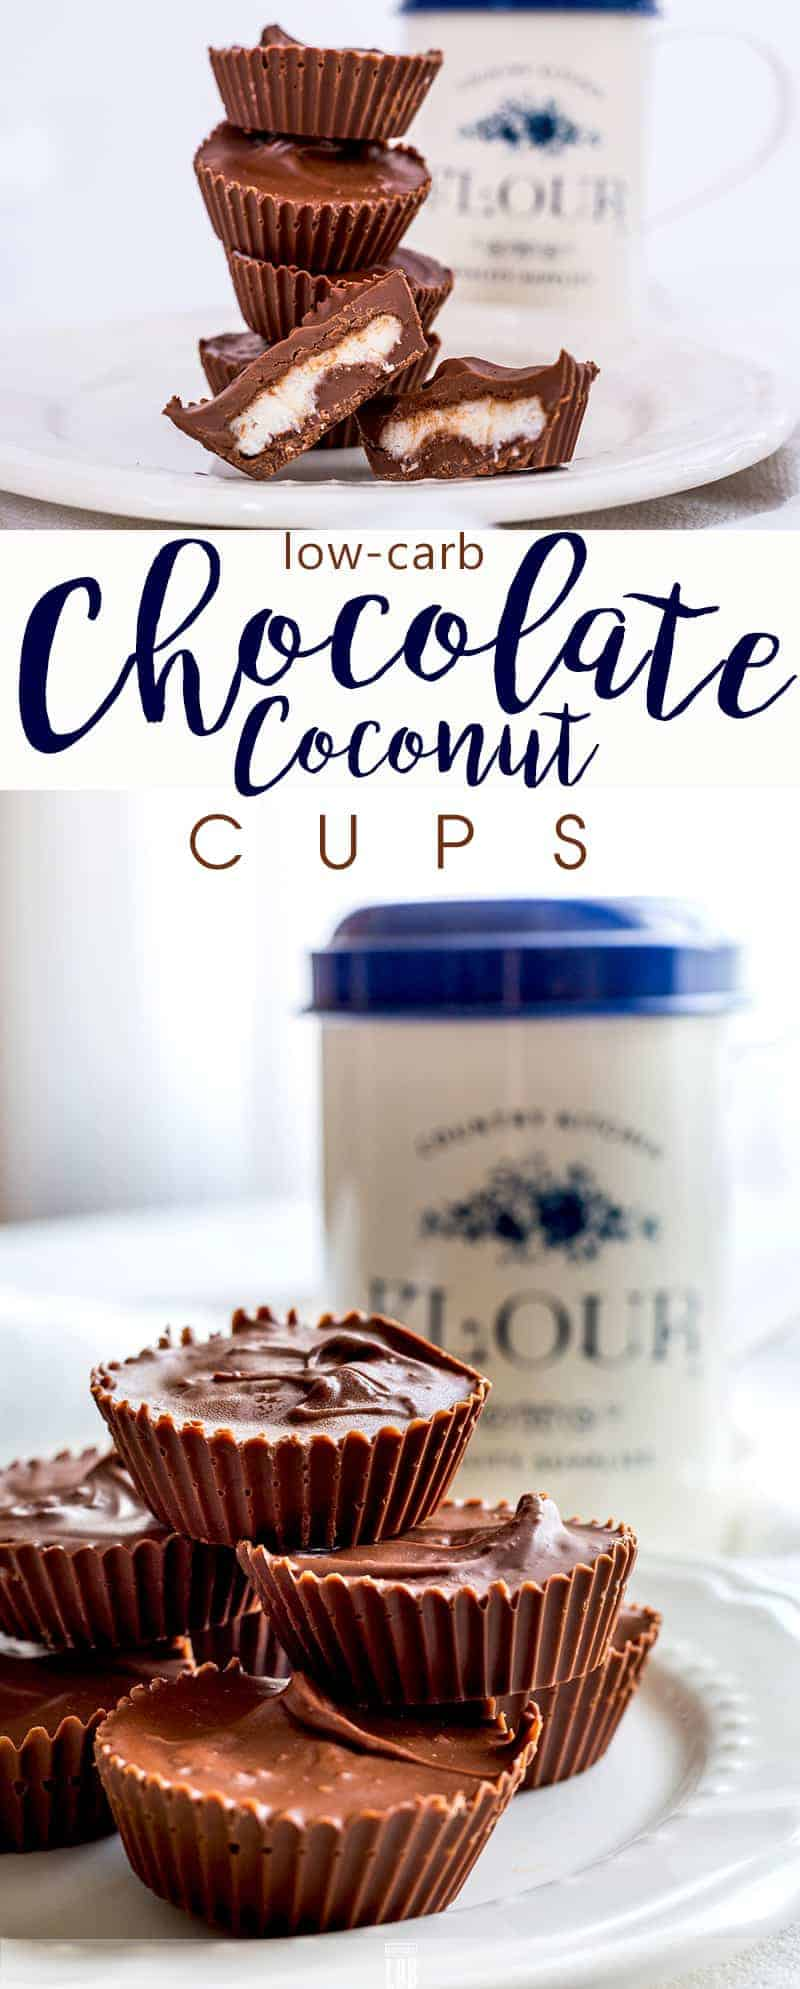 Low-Carb Chocolate-Coconut Cup